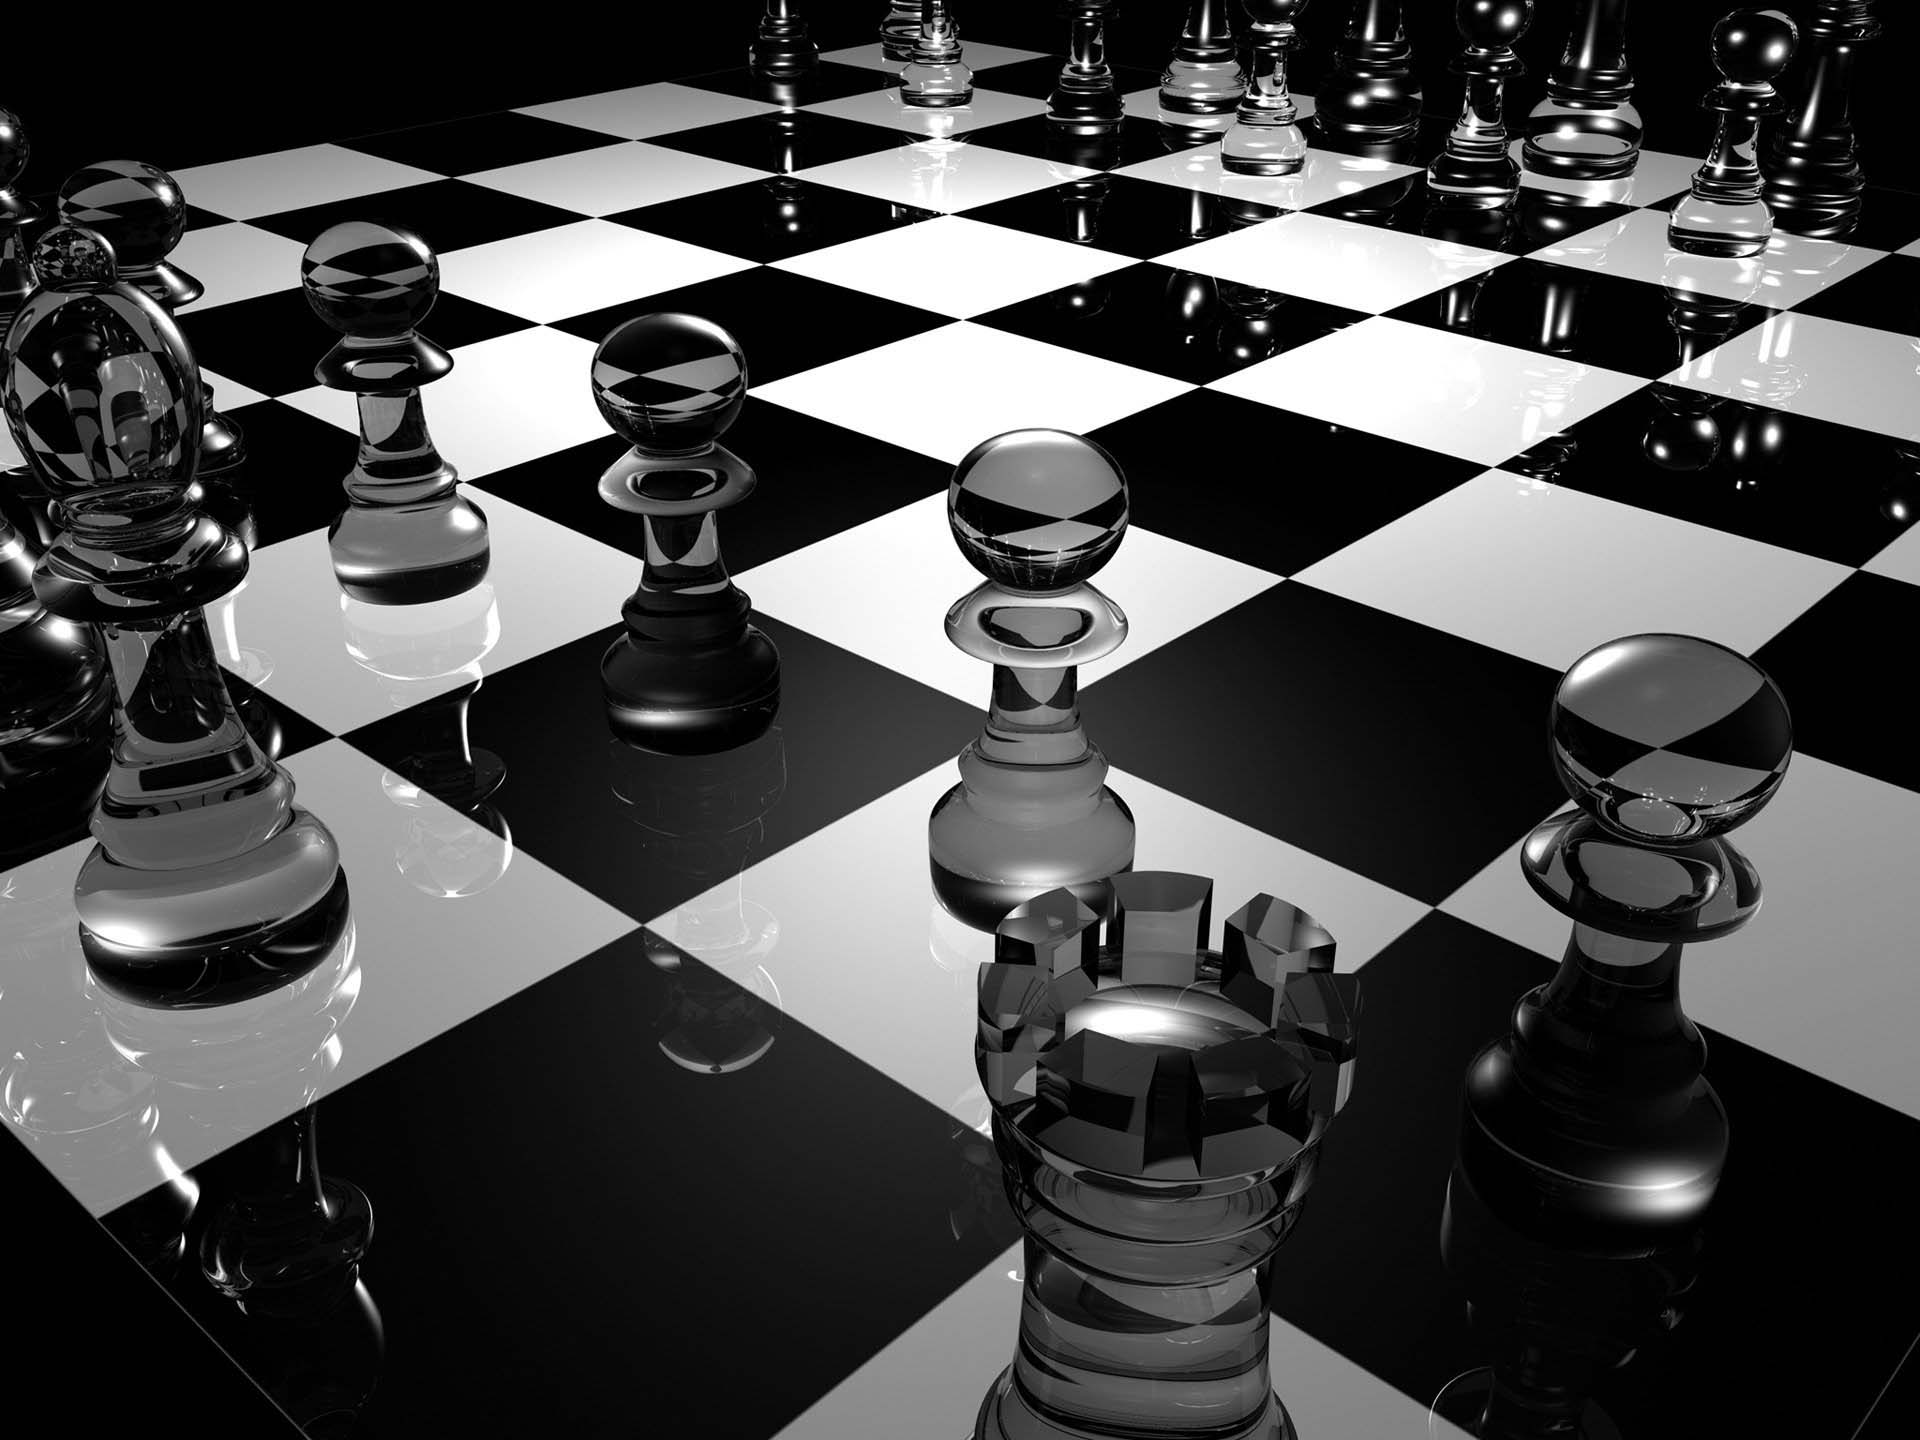 Black and white chess wallpaper